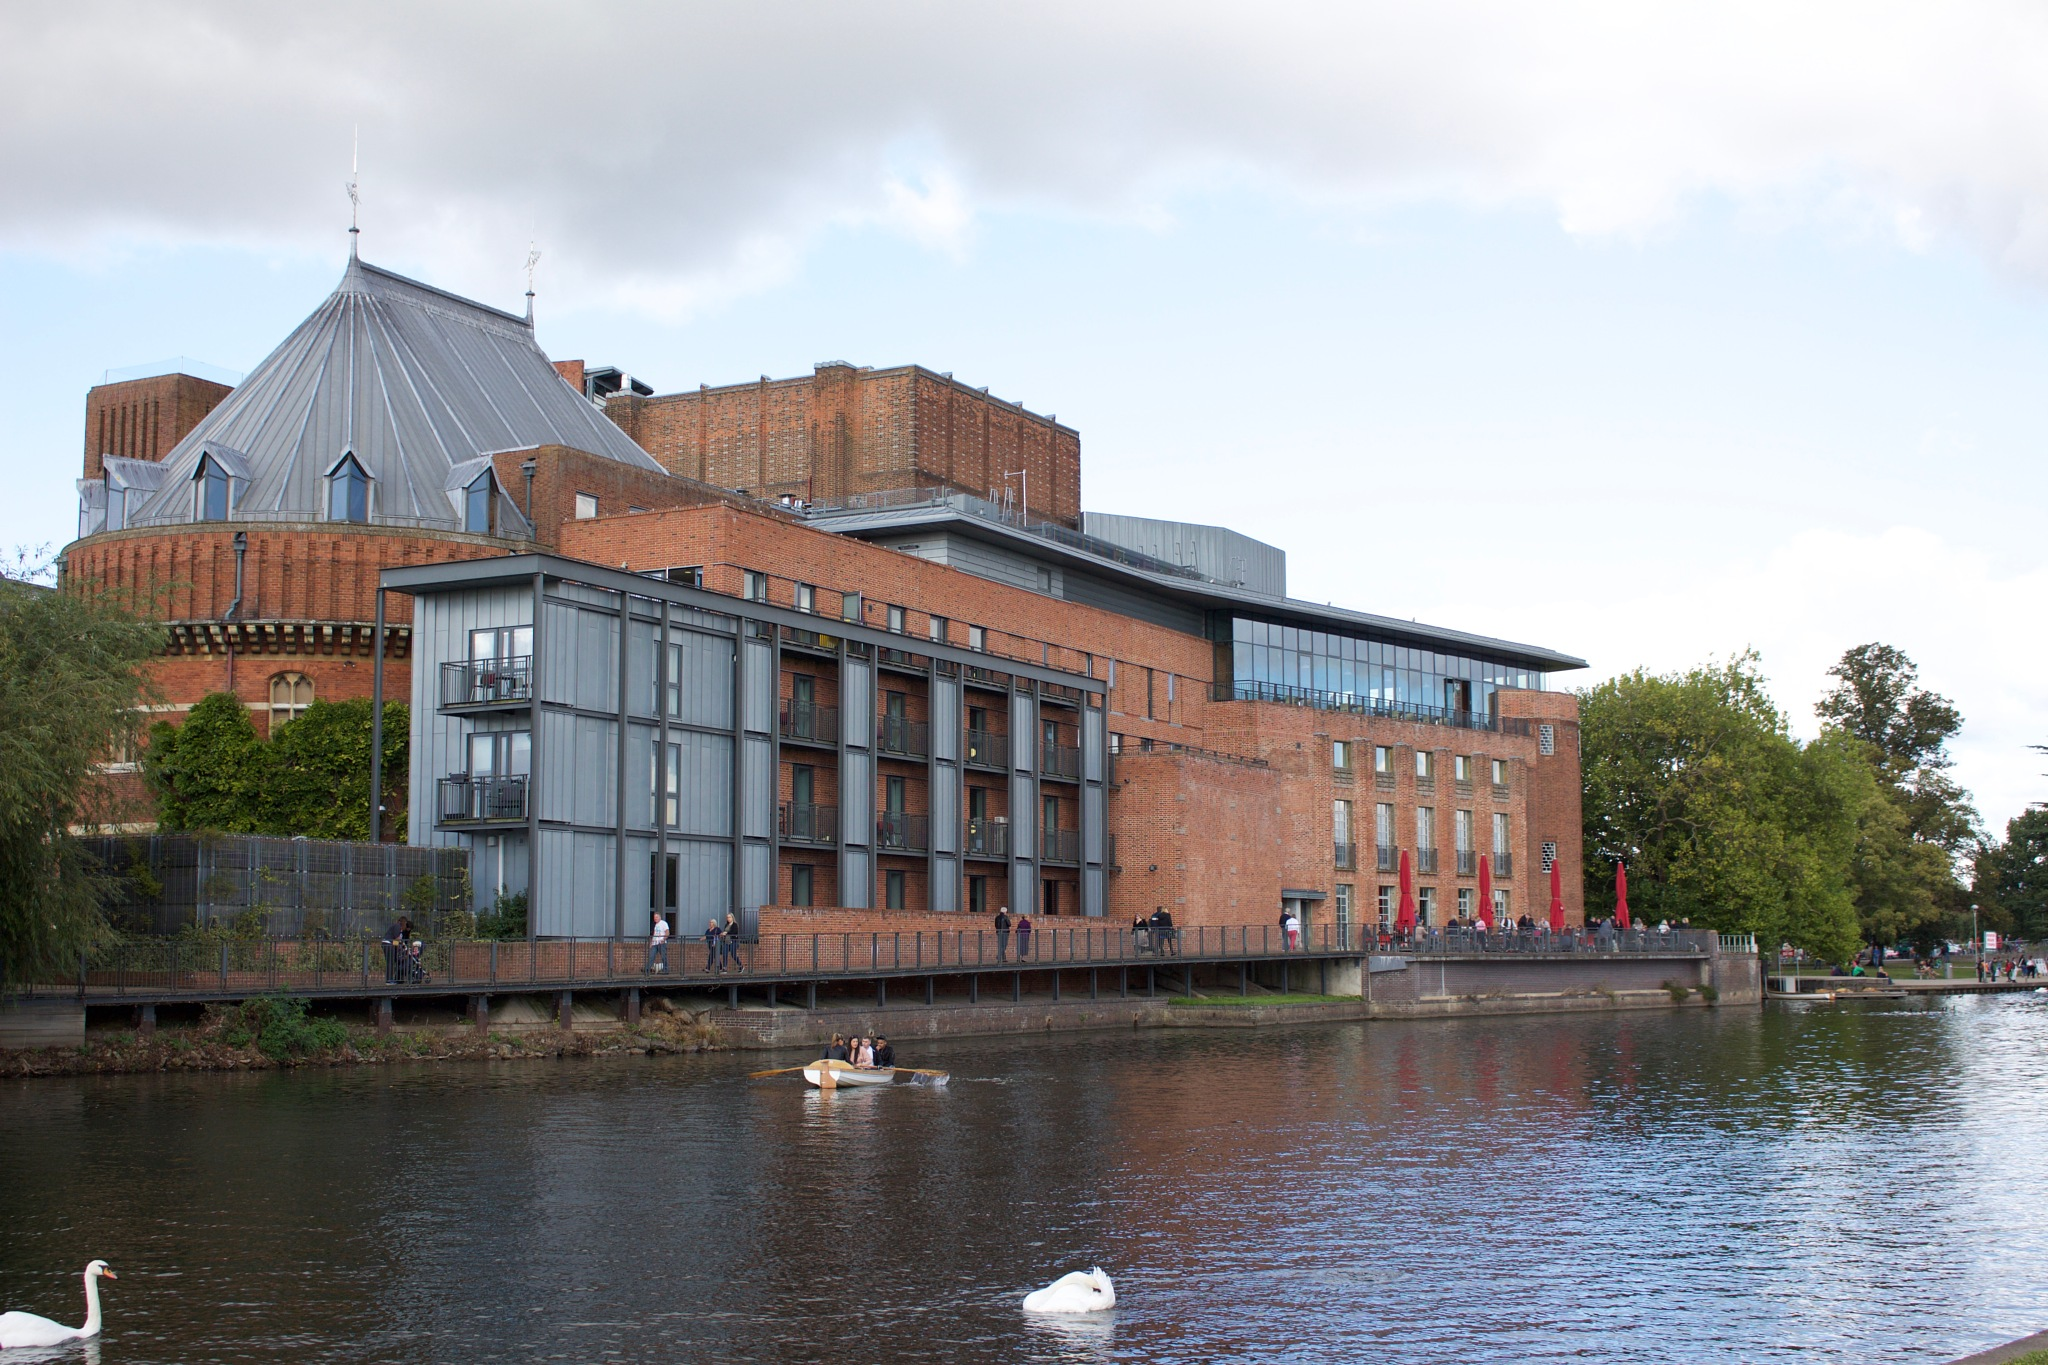 The Royal Shakespeare Company Theatre by Mark_silvester